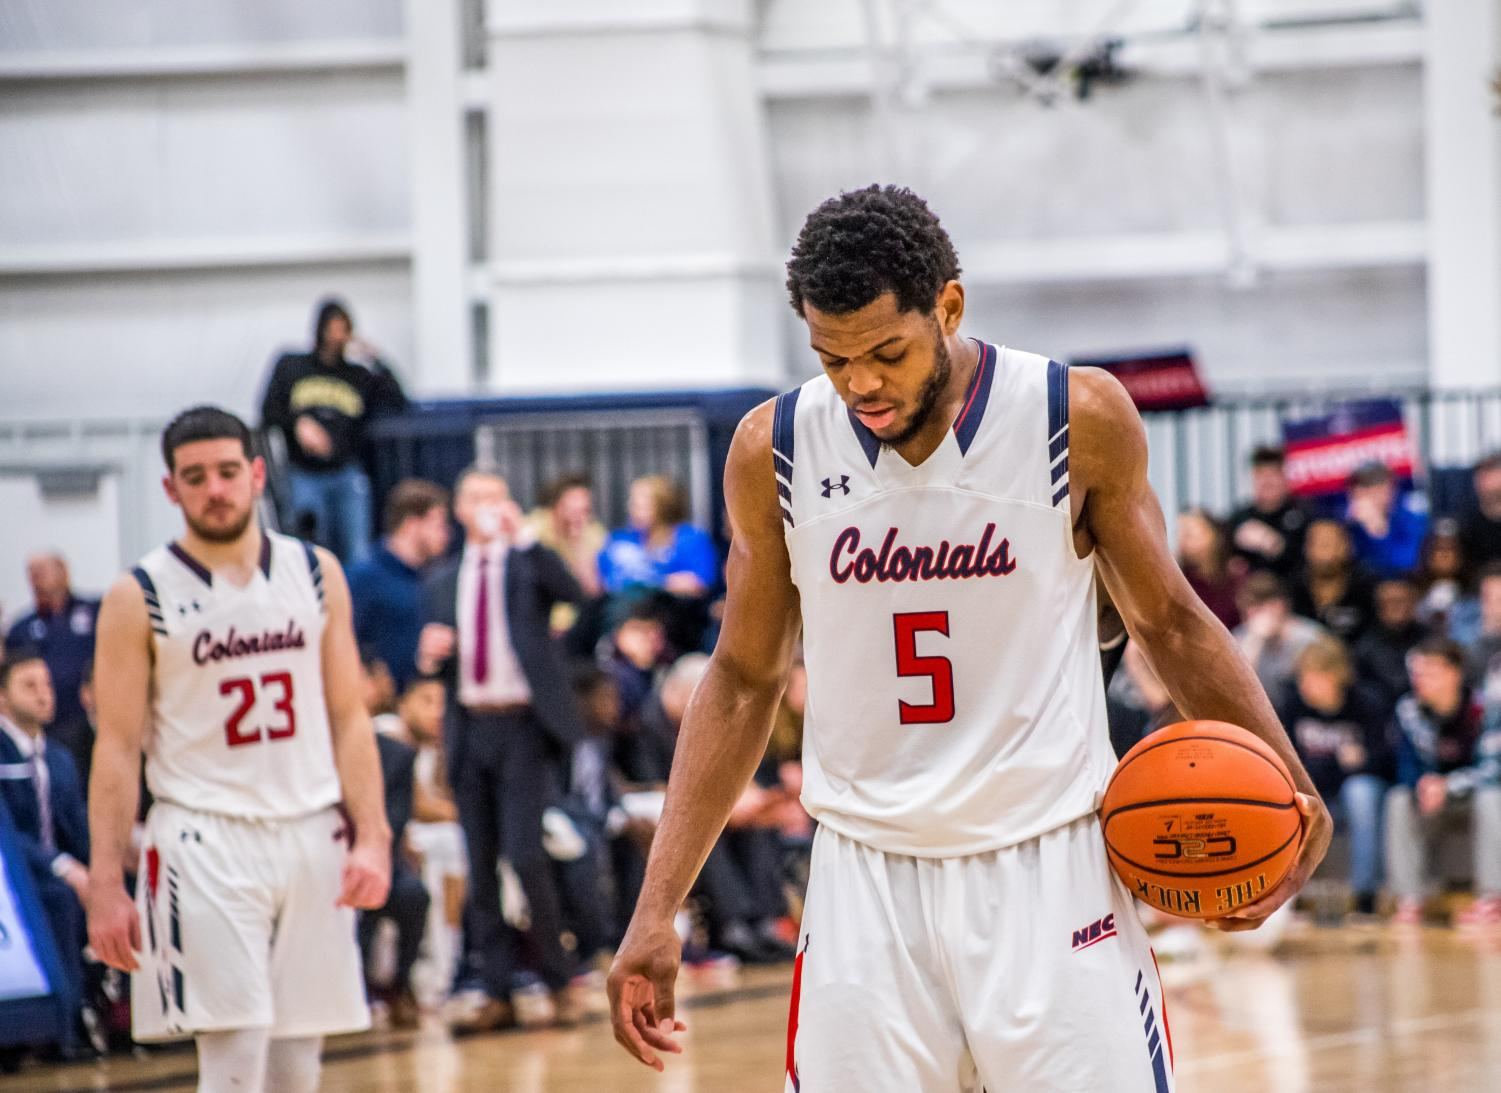 MOON TOWNSHIP -- Malik Petteway takes a foul shot as Matty McConnell watches on Feb. 7, 2019 (David Auth/RMU Sentry Media). Both Malik Petteway and Matty McConnell are players to watch for this weekend.